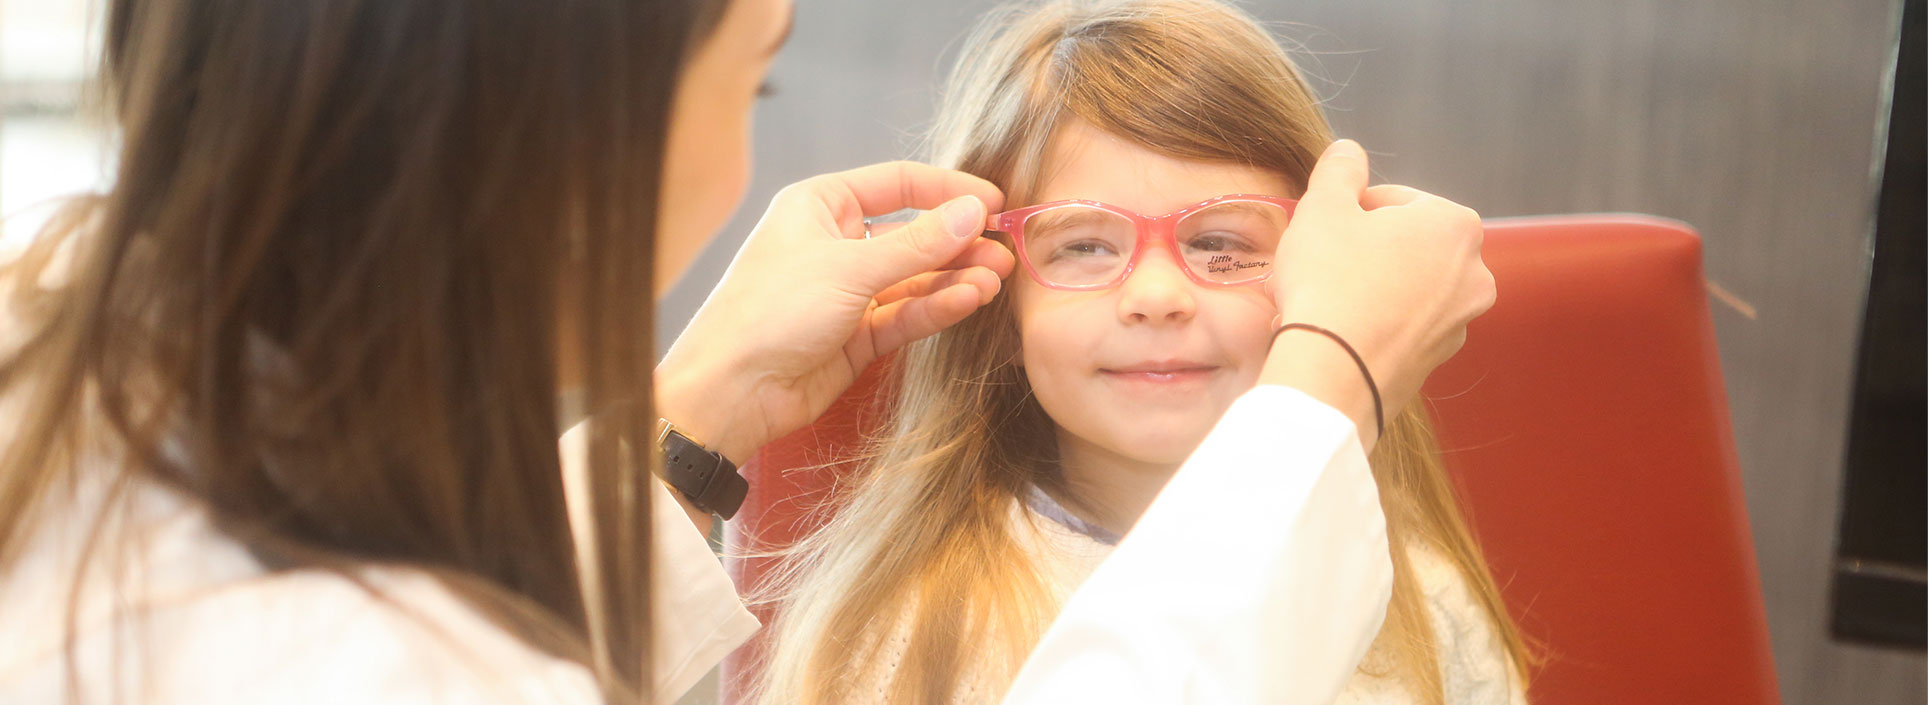 An employee of Roswell Eye Clinic placing a pair of glasses on young girl's smiling face.